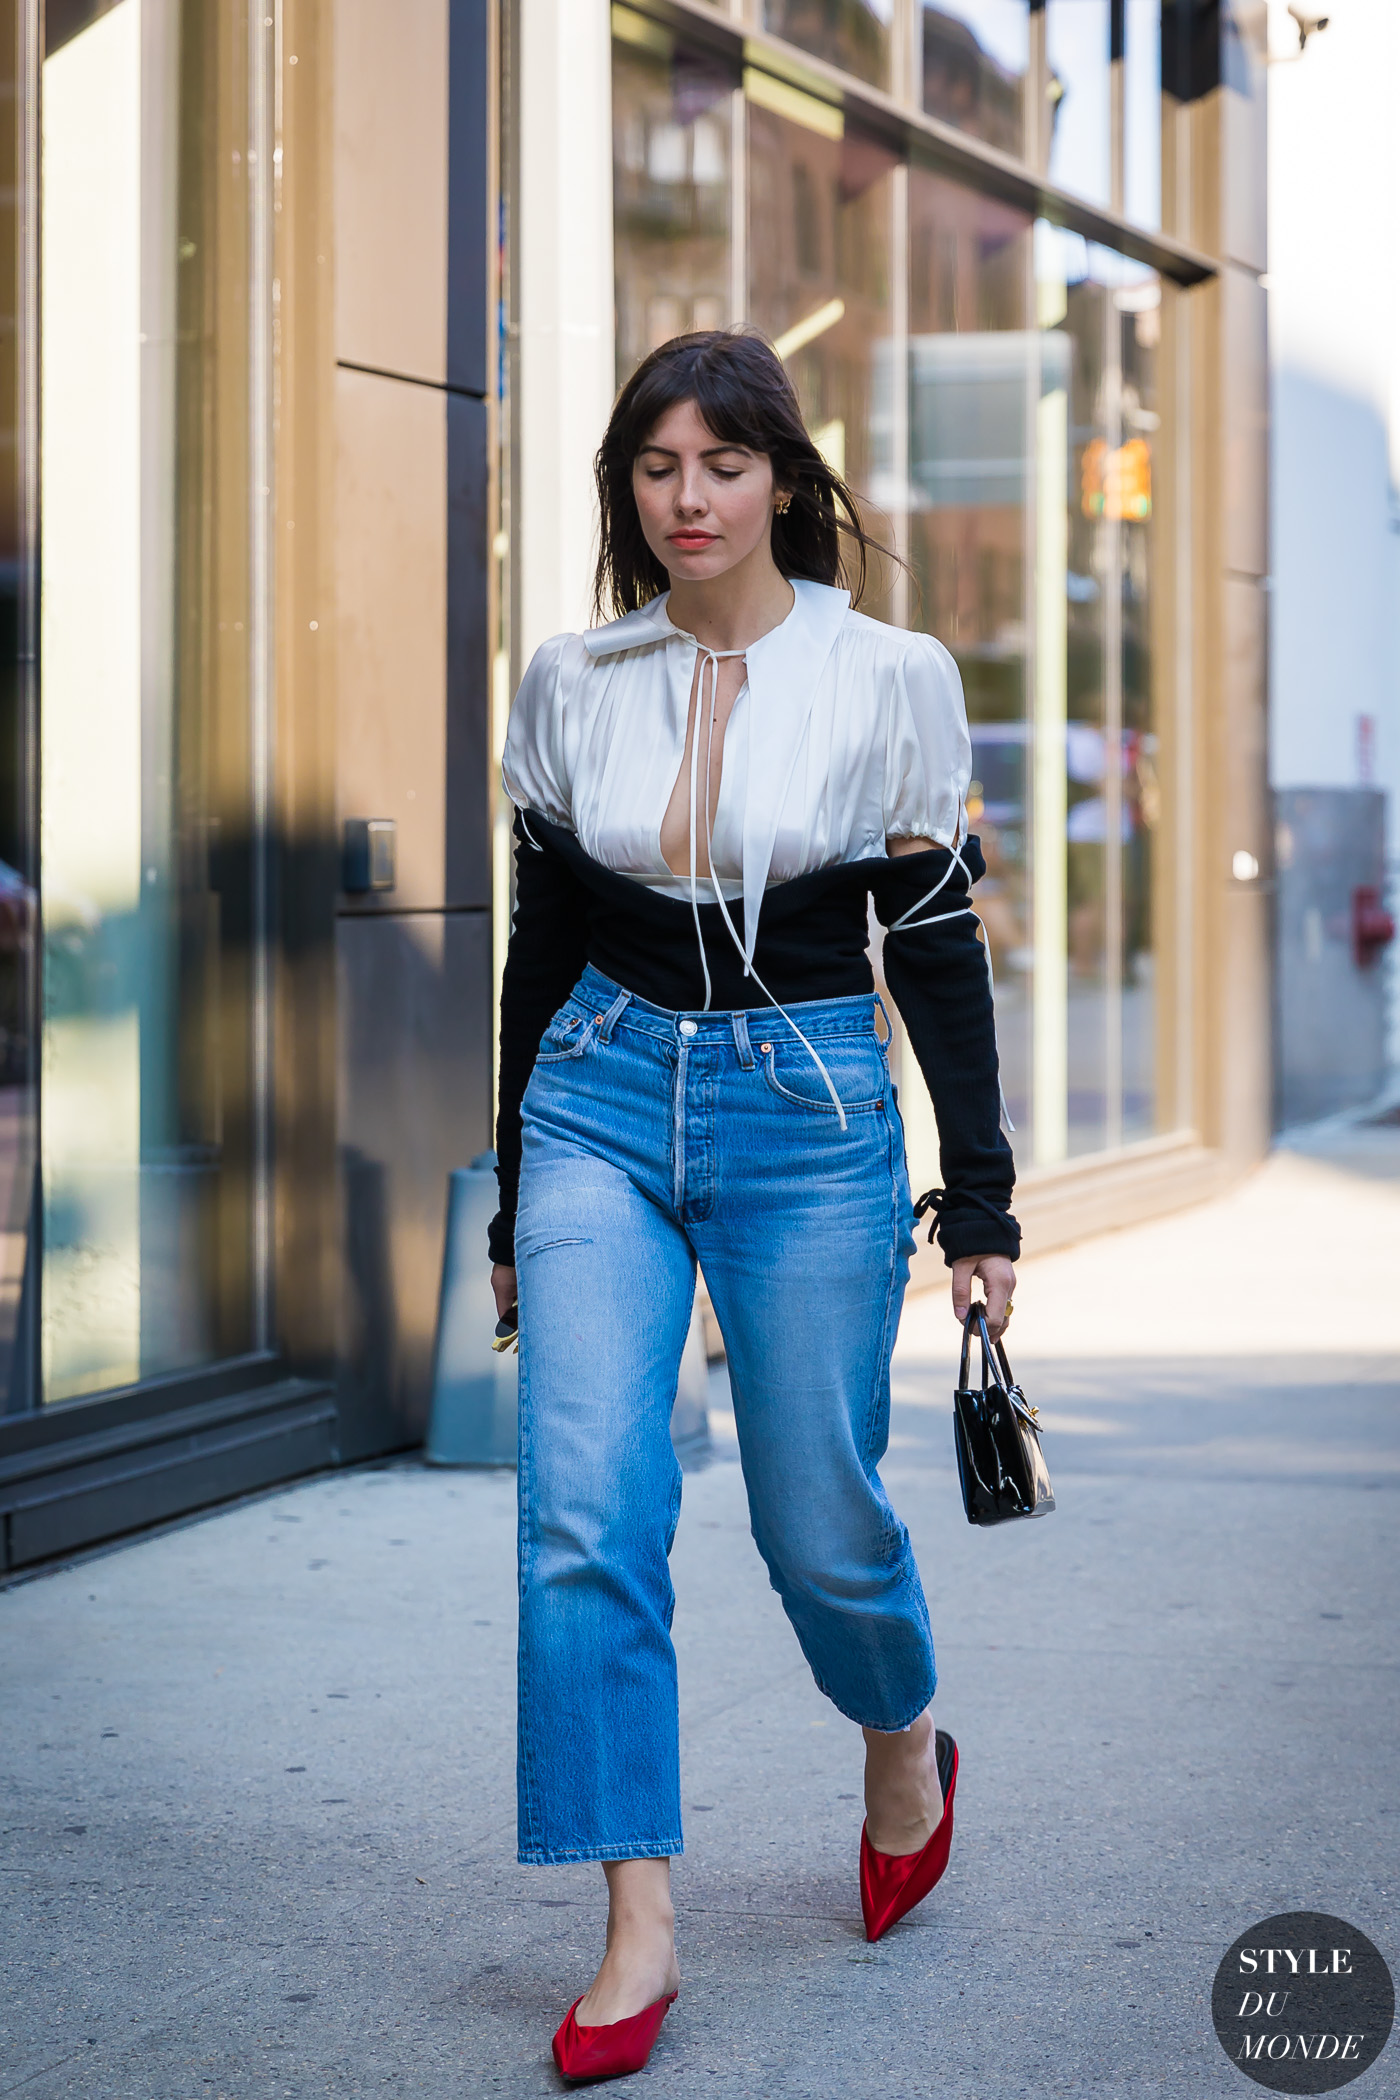 Kat Collings by STYLEDUMONDE Street Style Fashion Photography_48A6244